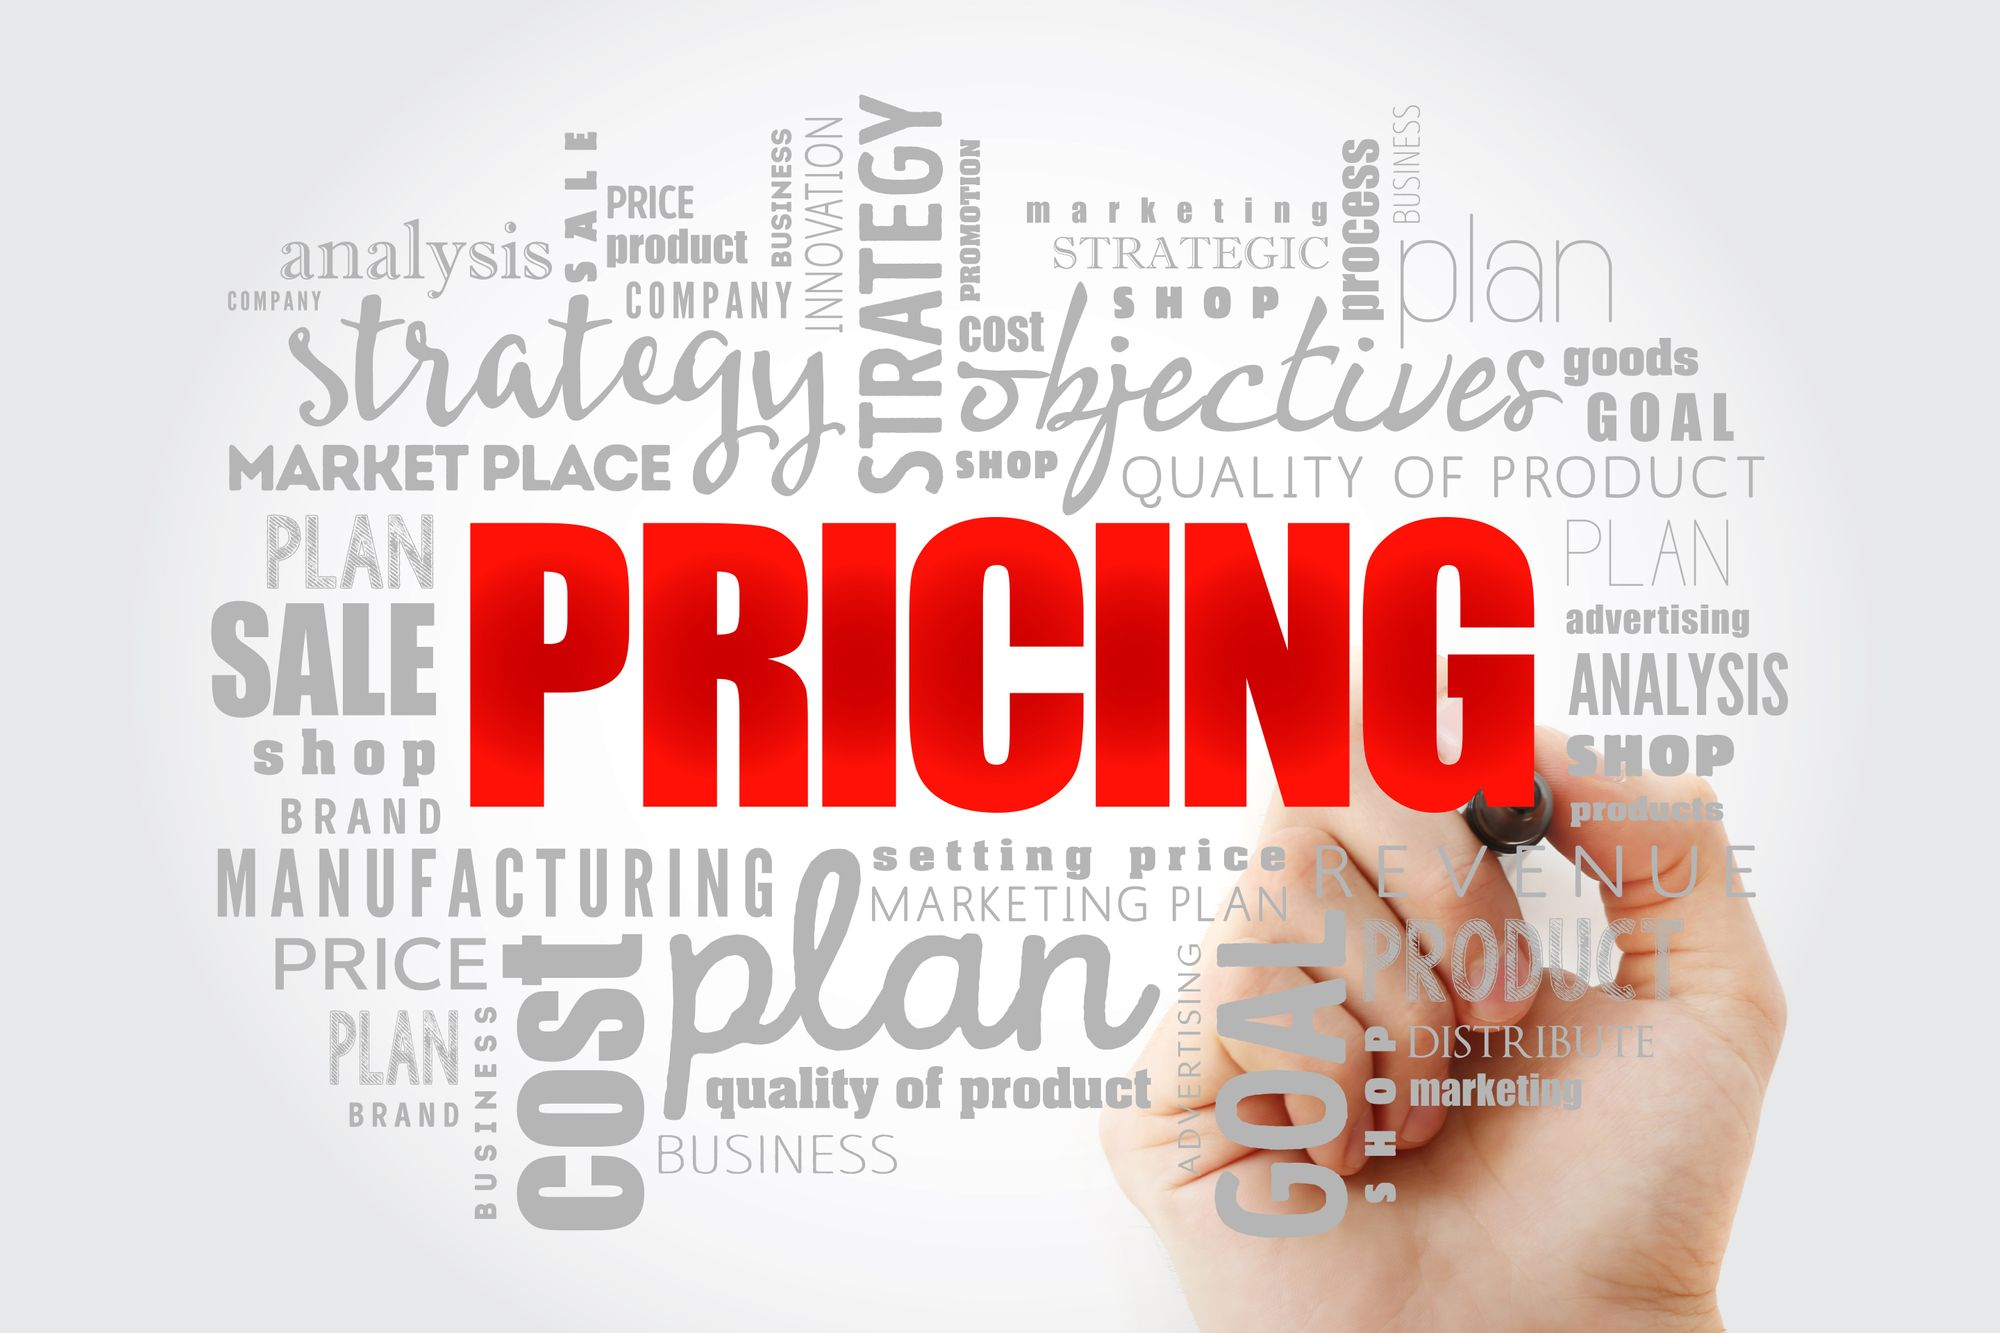 How To Find The Average Price Of Your Business Product In The Market?